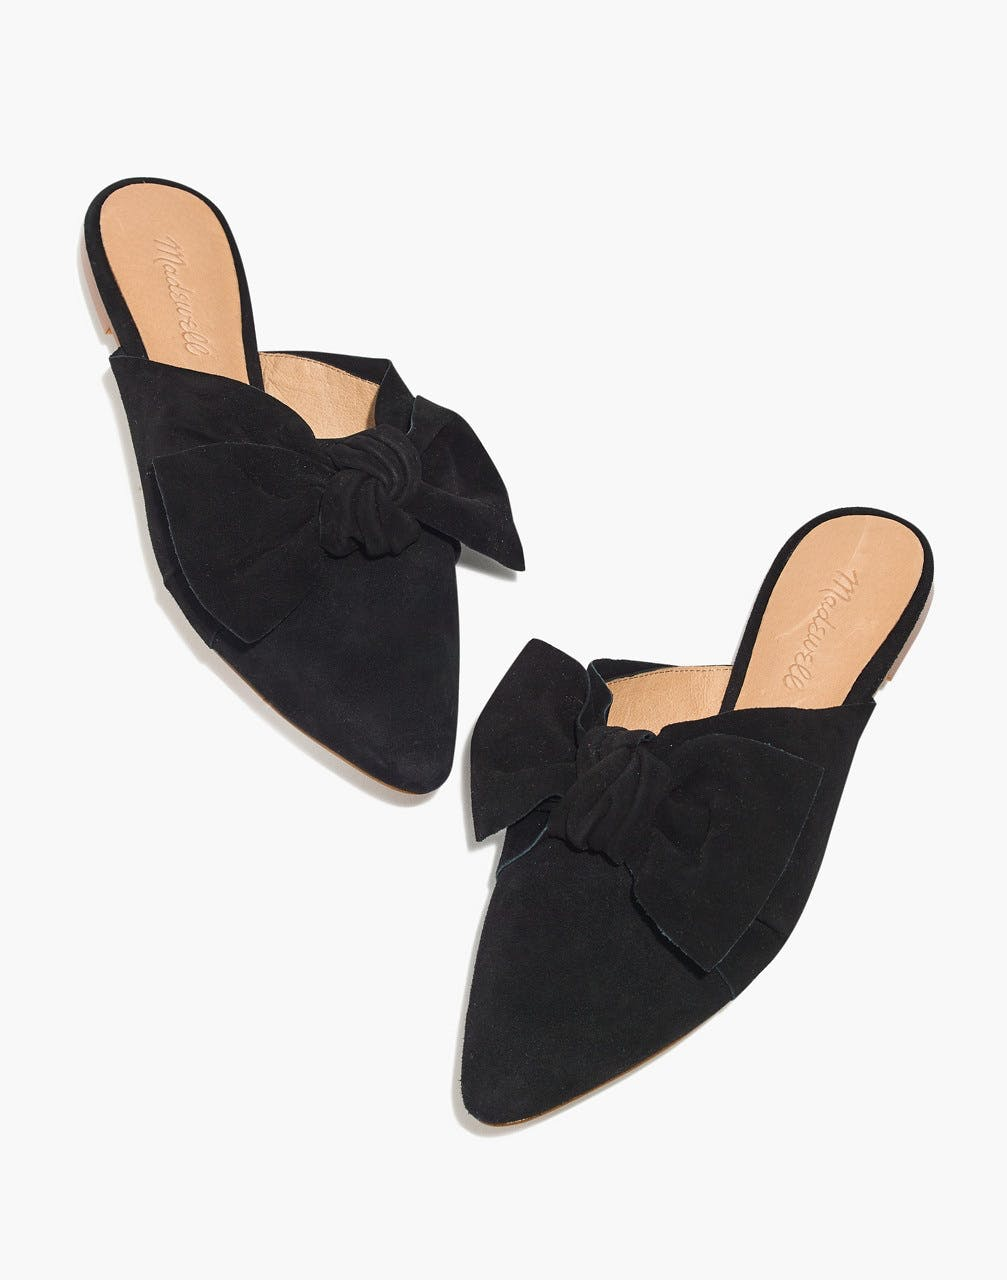 The Remi Bow Mules